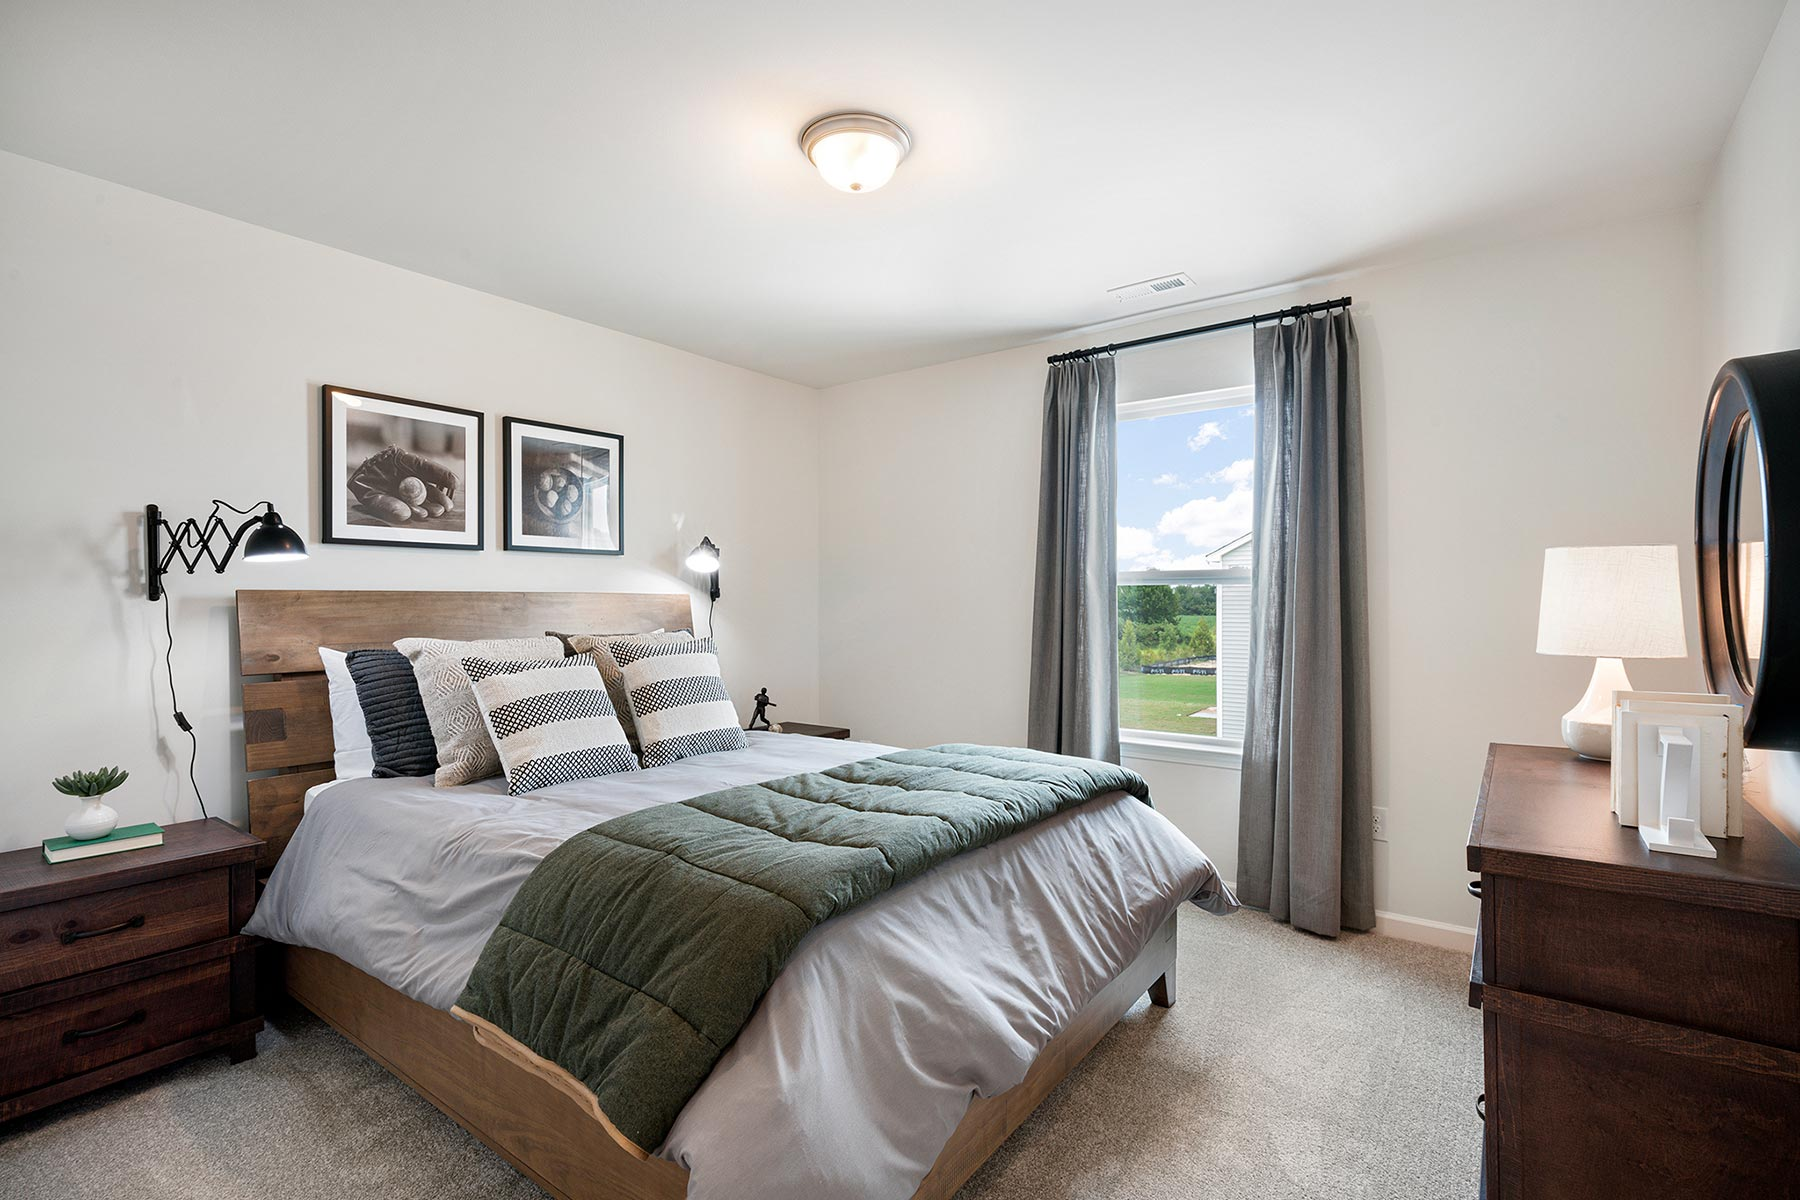 Gaines Plan Bedroom at Briar Gate in Fuquay-Varina North Carolina by Mattamy Homes